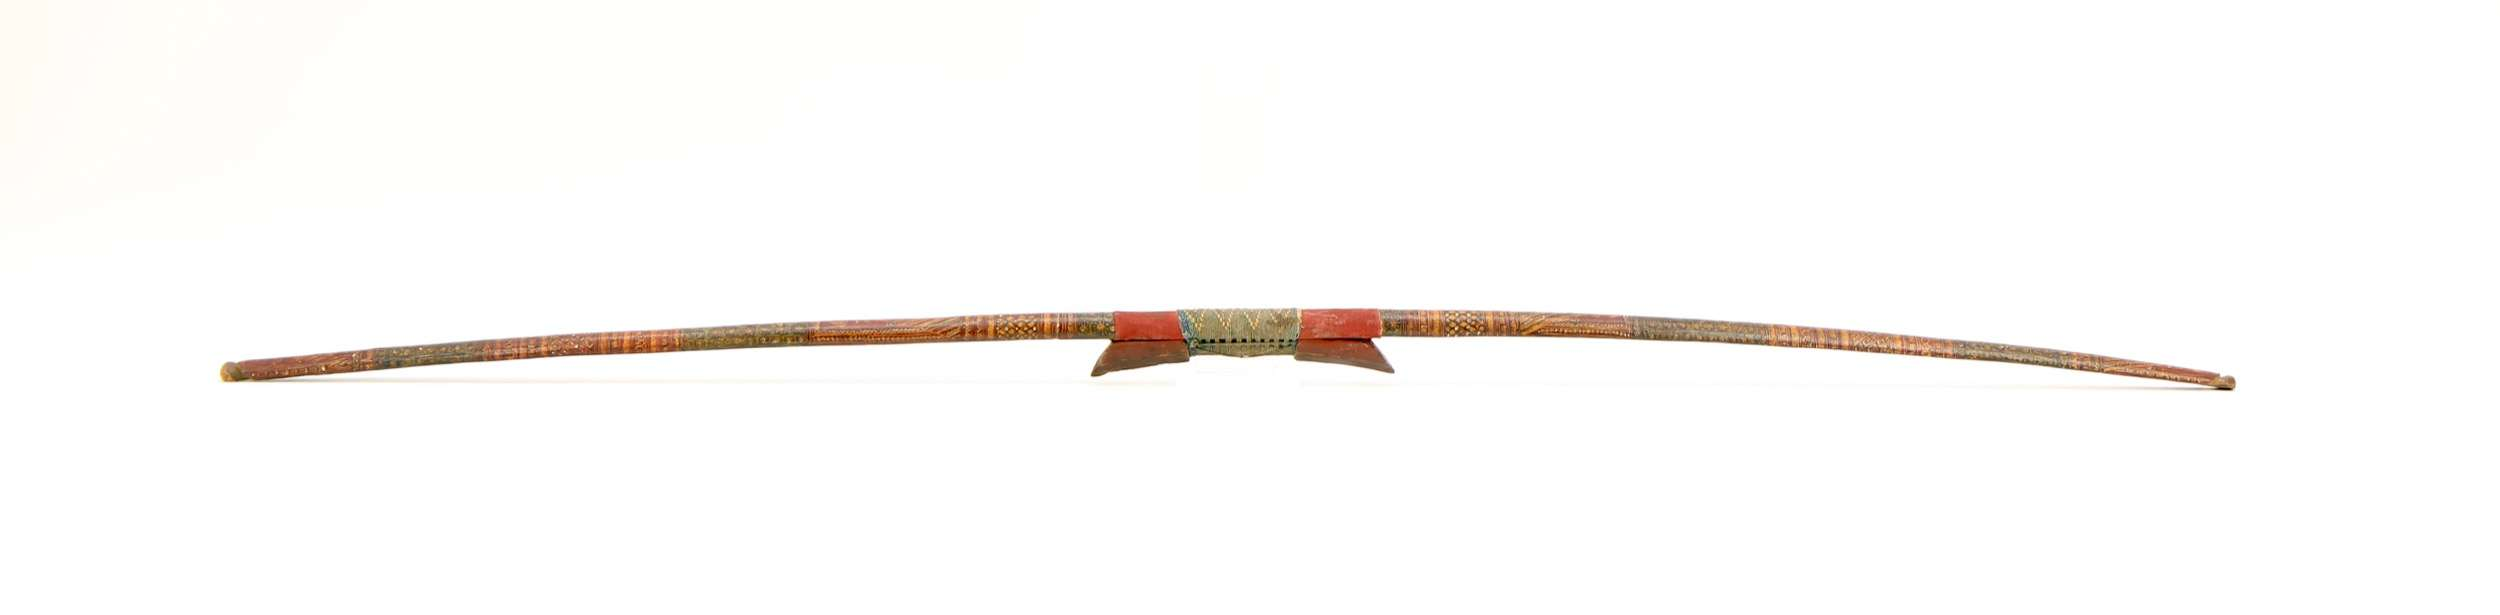 Sinew backed bow from Kashmir